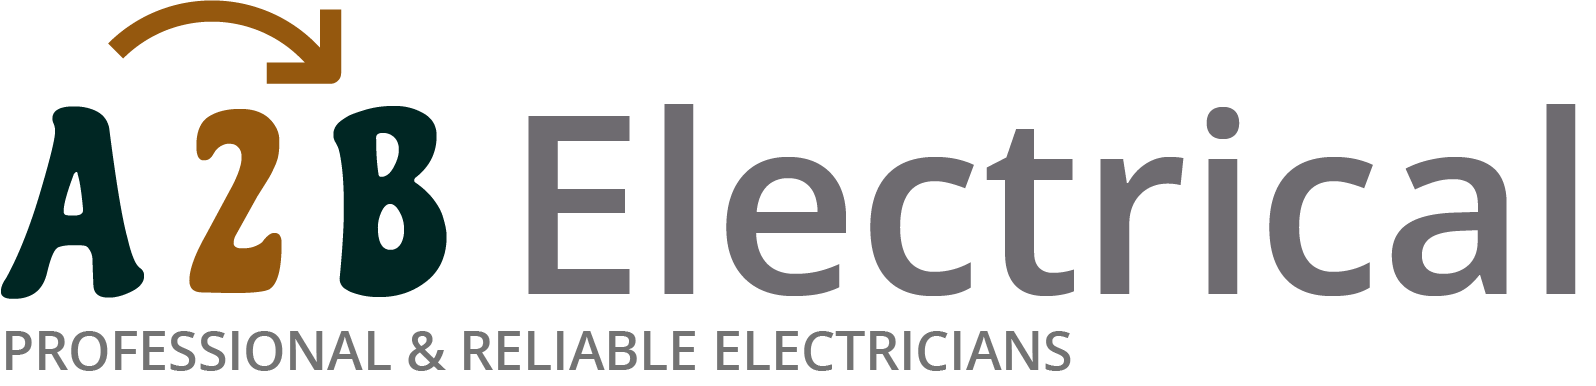 If you have electrical wiring problems in Canvey Island, we can provide an electrician to have a look for you.